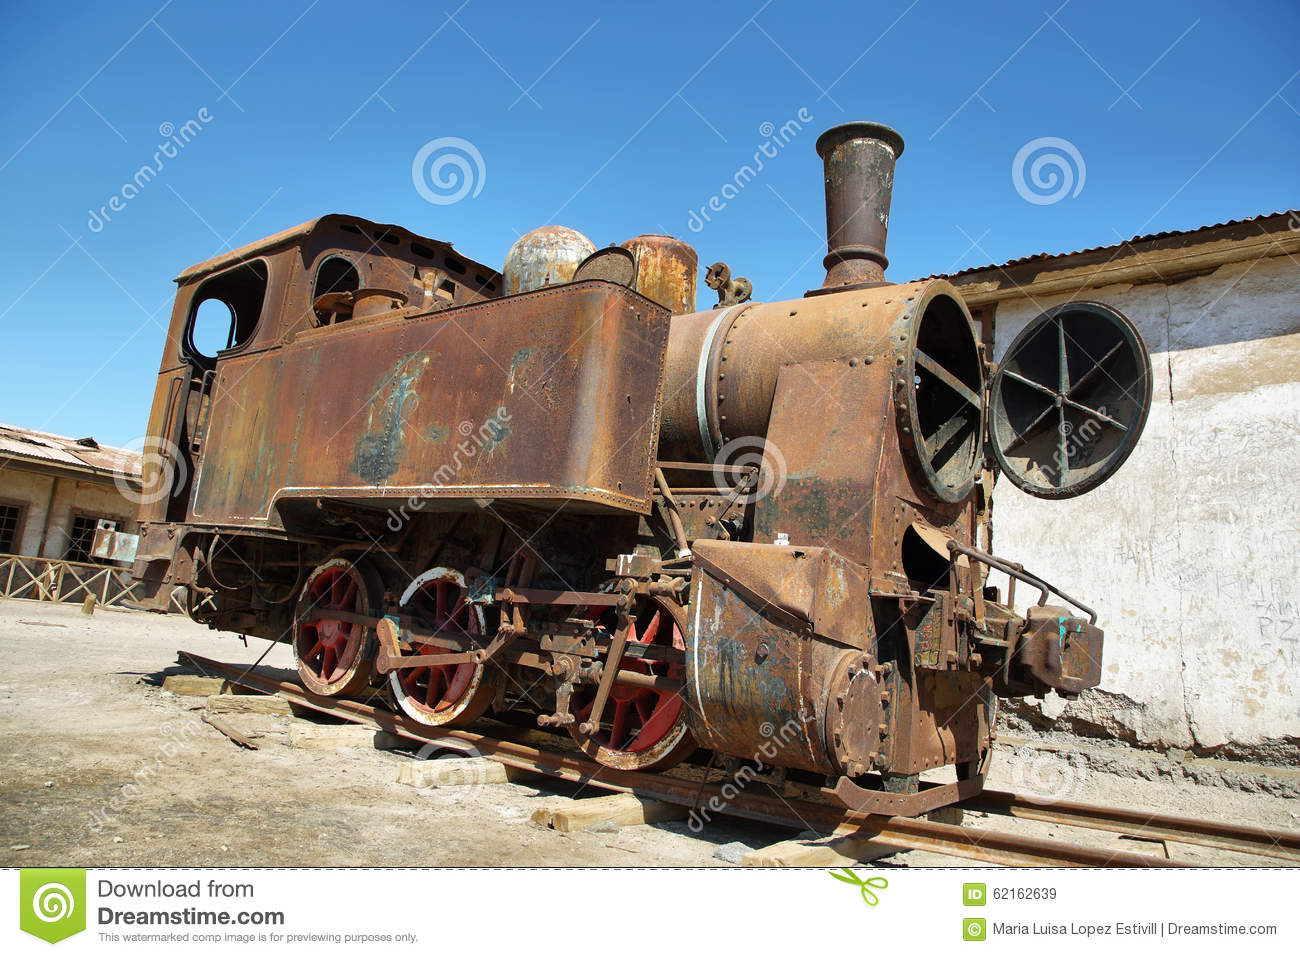 Derelict and rusting steam train in Humberstone, Chile